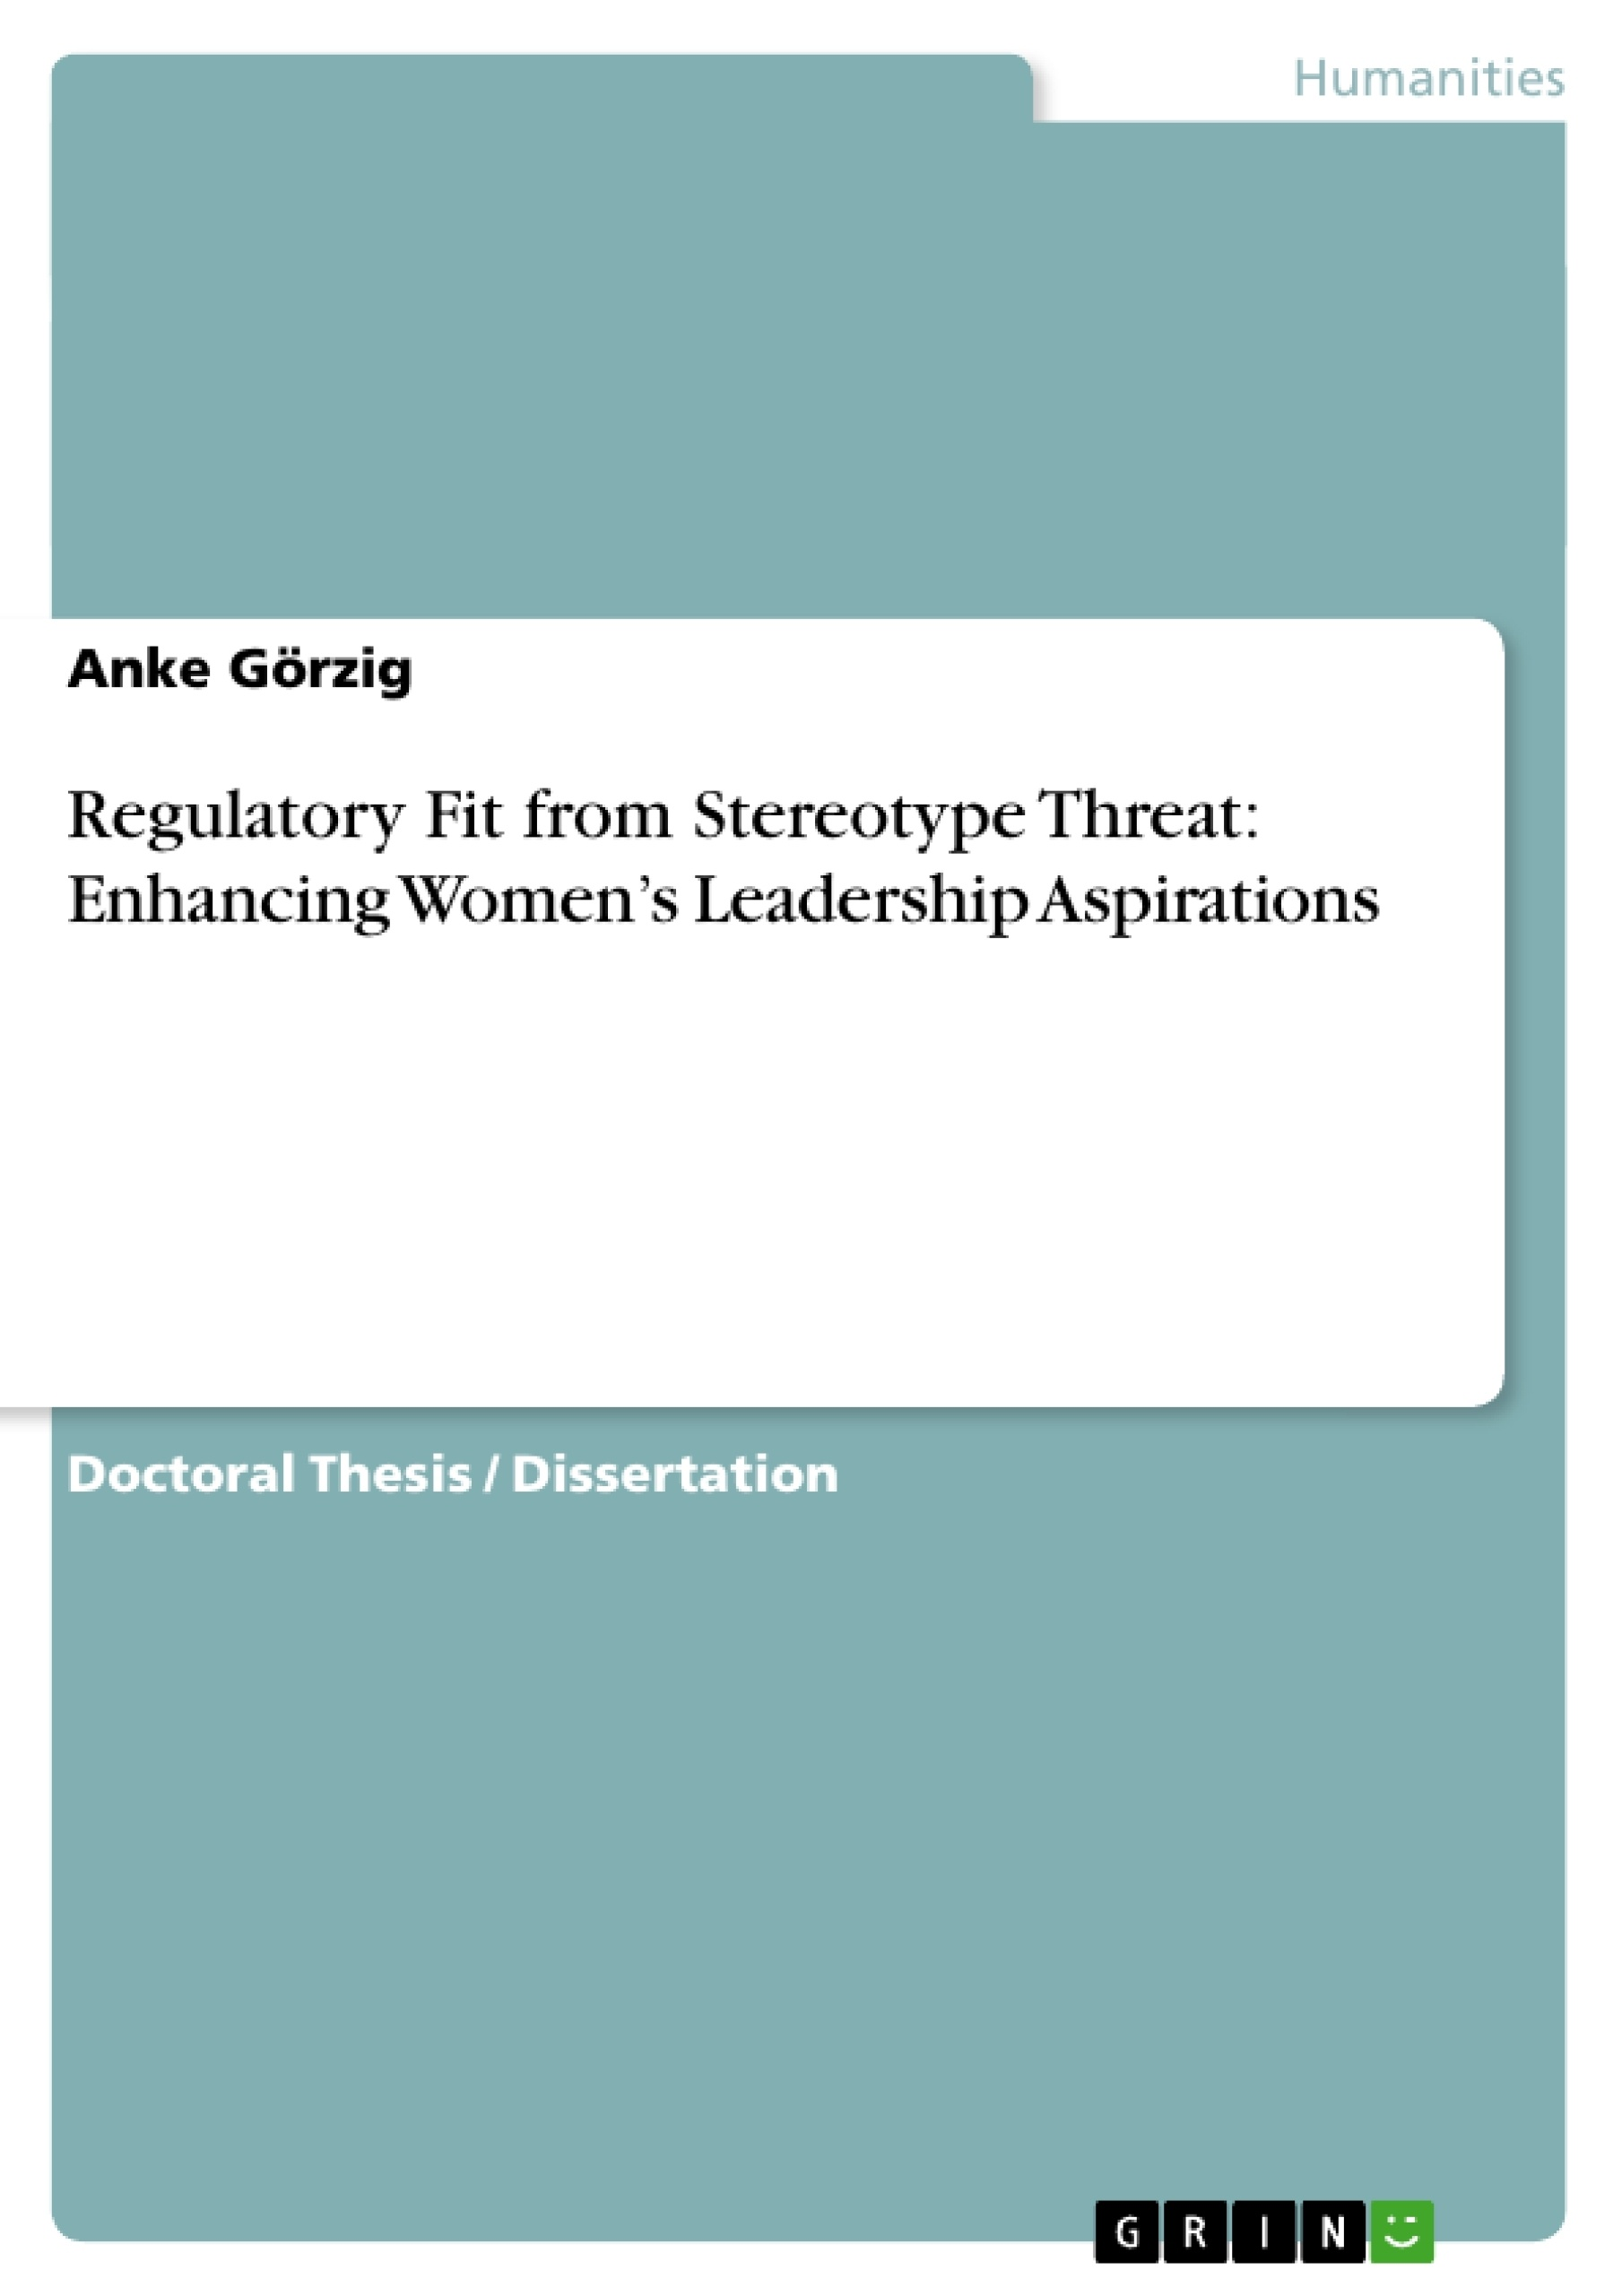 Title: Regulatory Fit from Stereotype Threat: Enhancing Women's Leadership Aspirations